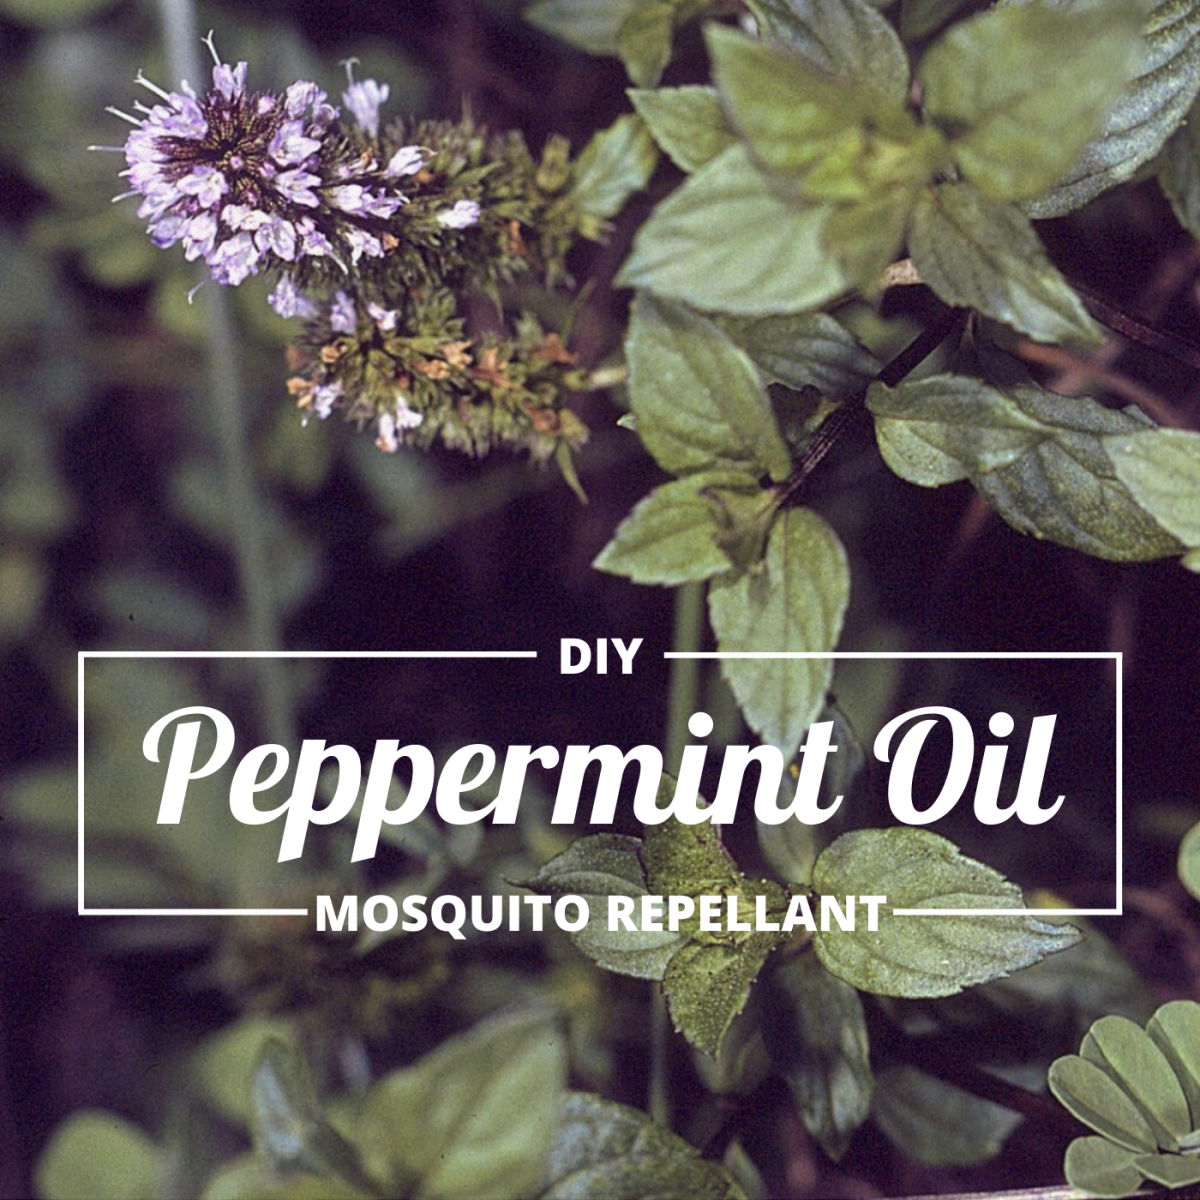 Traditional mosquito repellants are expensive and contain harsh chemicals. Peppermint oil is a cheaper and more natural alternative.